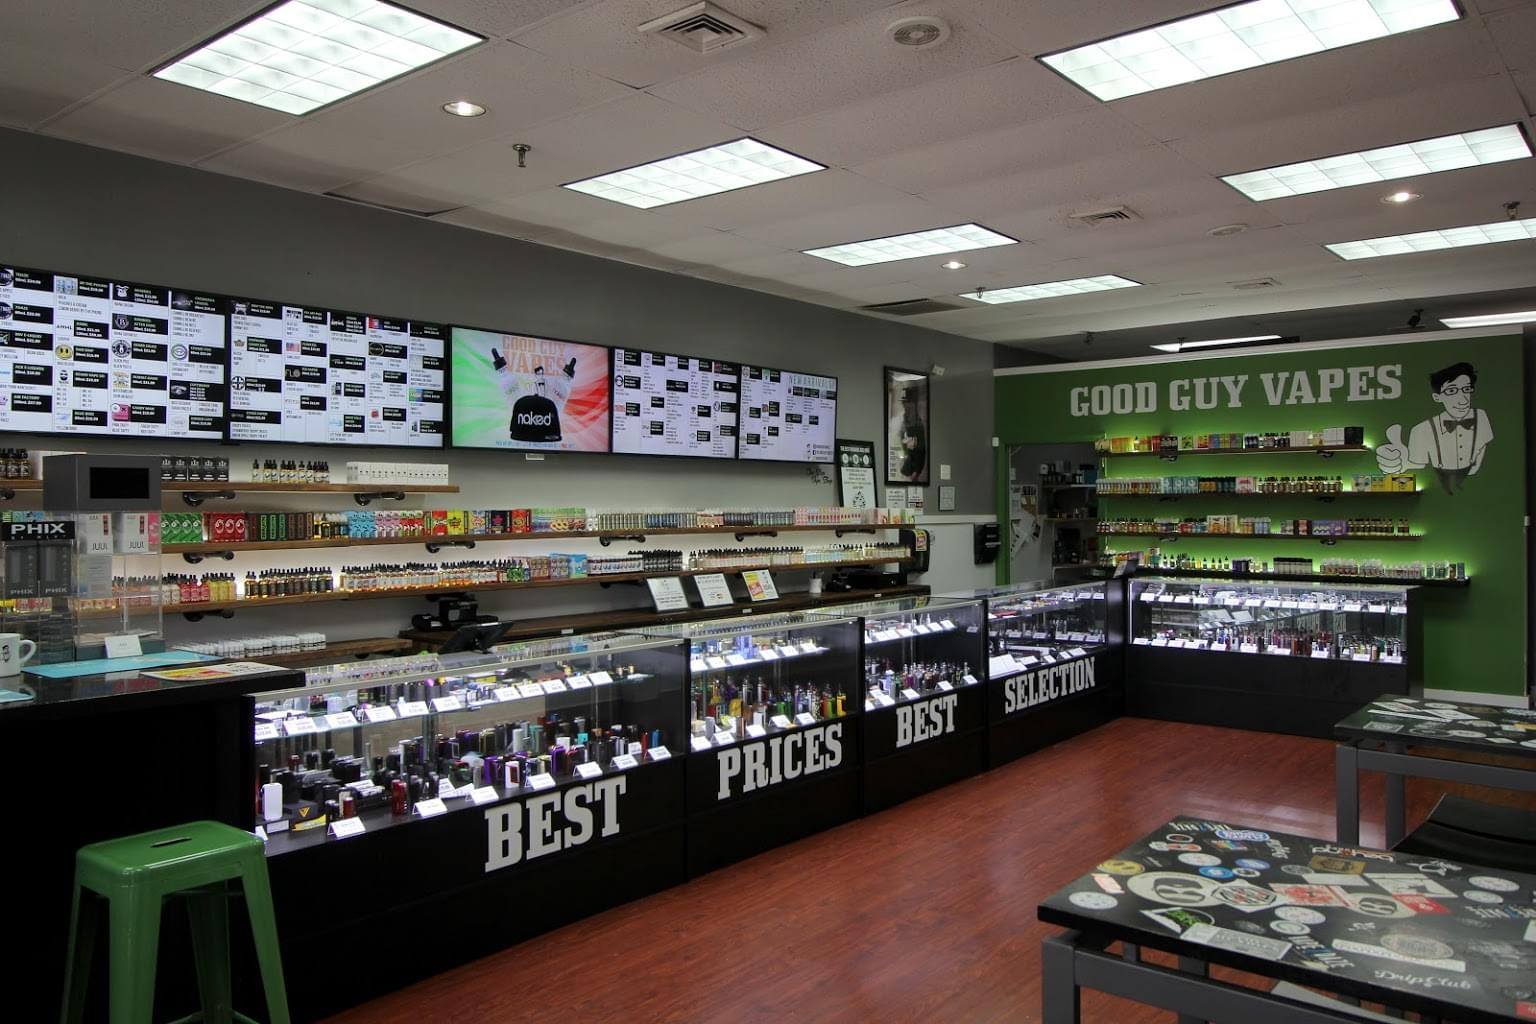 Good Guy Vapes – Parsippany, NJ – See-Inside Vaporizer Store